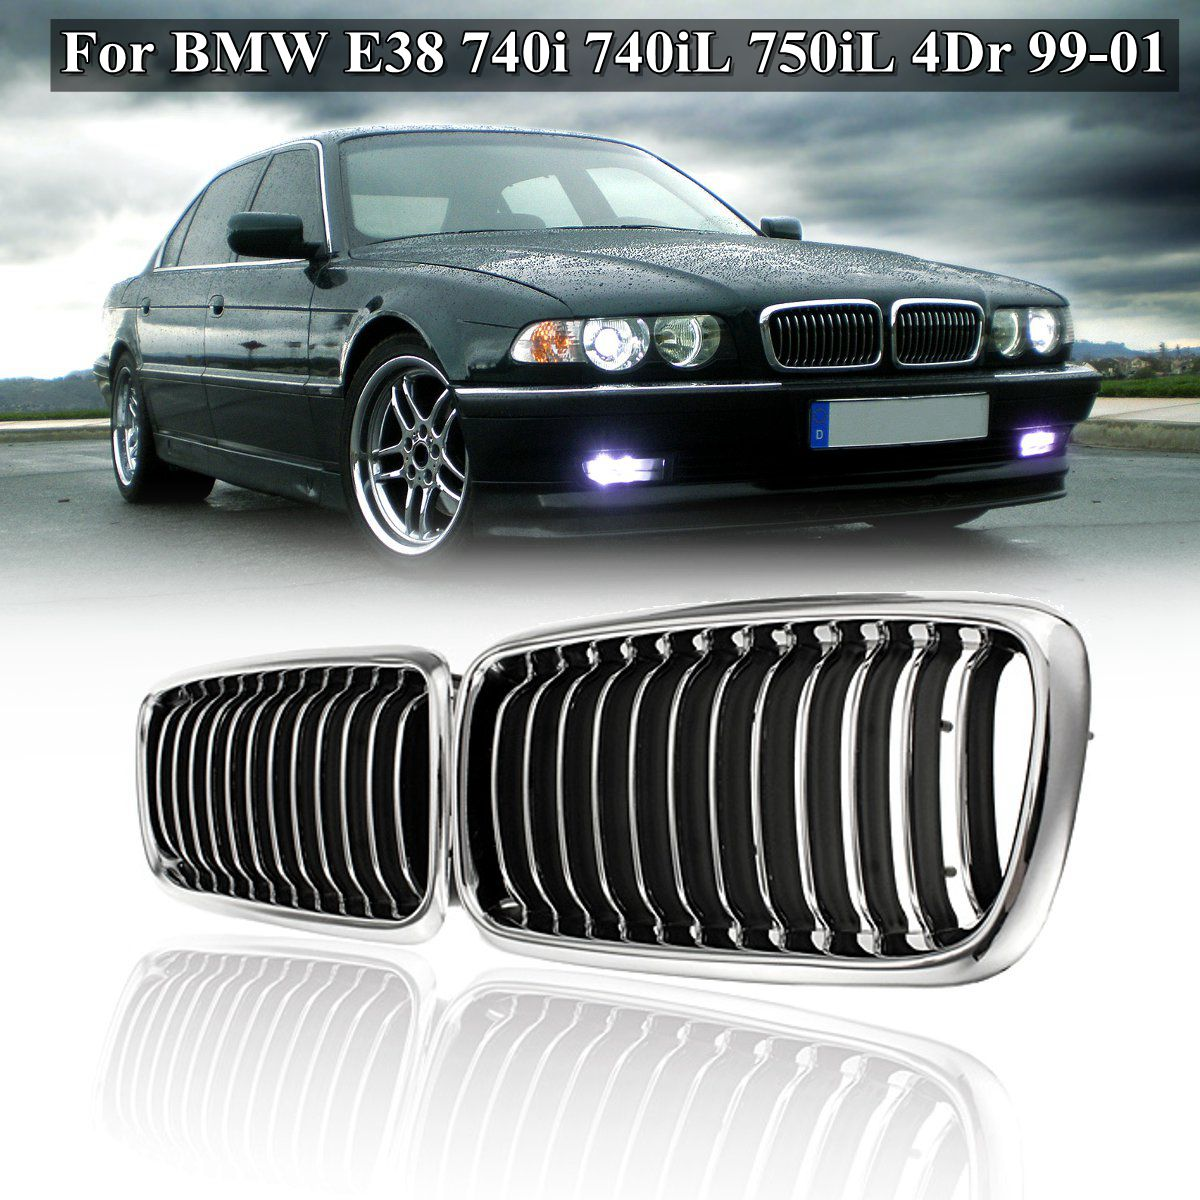 Pair Matte Black Chrome Front <font><b>Grill</b></font> Grille For <font><b>BMW</b></font> <font><b>E38</b></font> 740i 740iL 750iL 4Dr 1999 2000 2001 Car Styling Racing <font><b>Grills</b></font> image